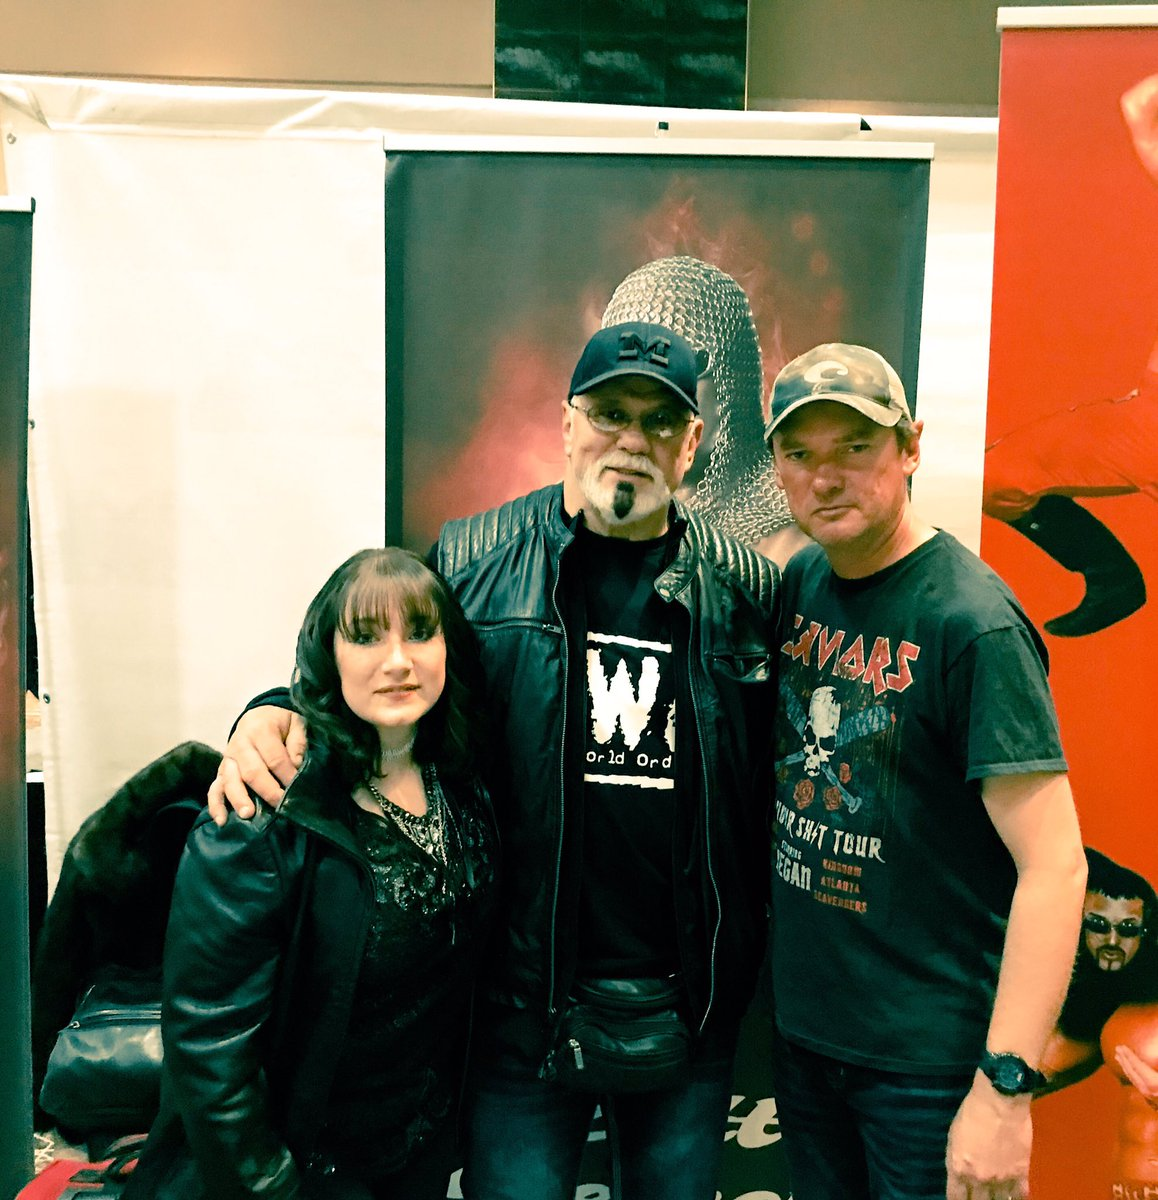 #ScottSteiner is such a nice guy! We had a great time meeting you @ScottSteiner !! #wrestlecade #nc #northcarolina #winstonsalem #bigpoppapump #scottsteiner #freakzilla #bigbadbootydaddy #wcw #nwo #newworldorder #wwe #wwf #impactwrestling #wolfpac #nothingfinerthanscottsteiner